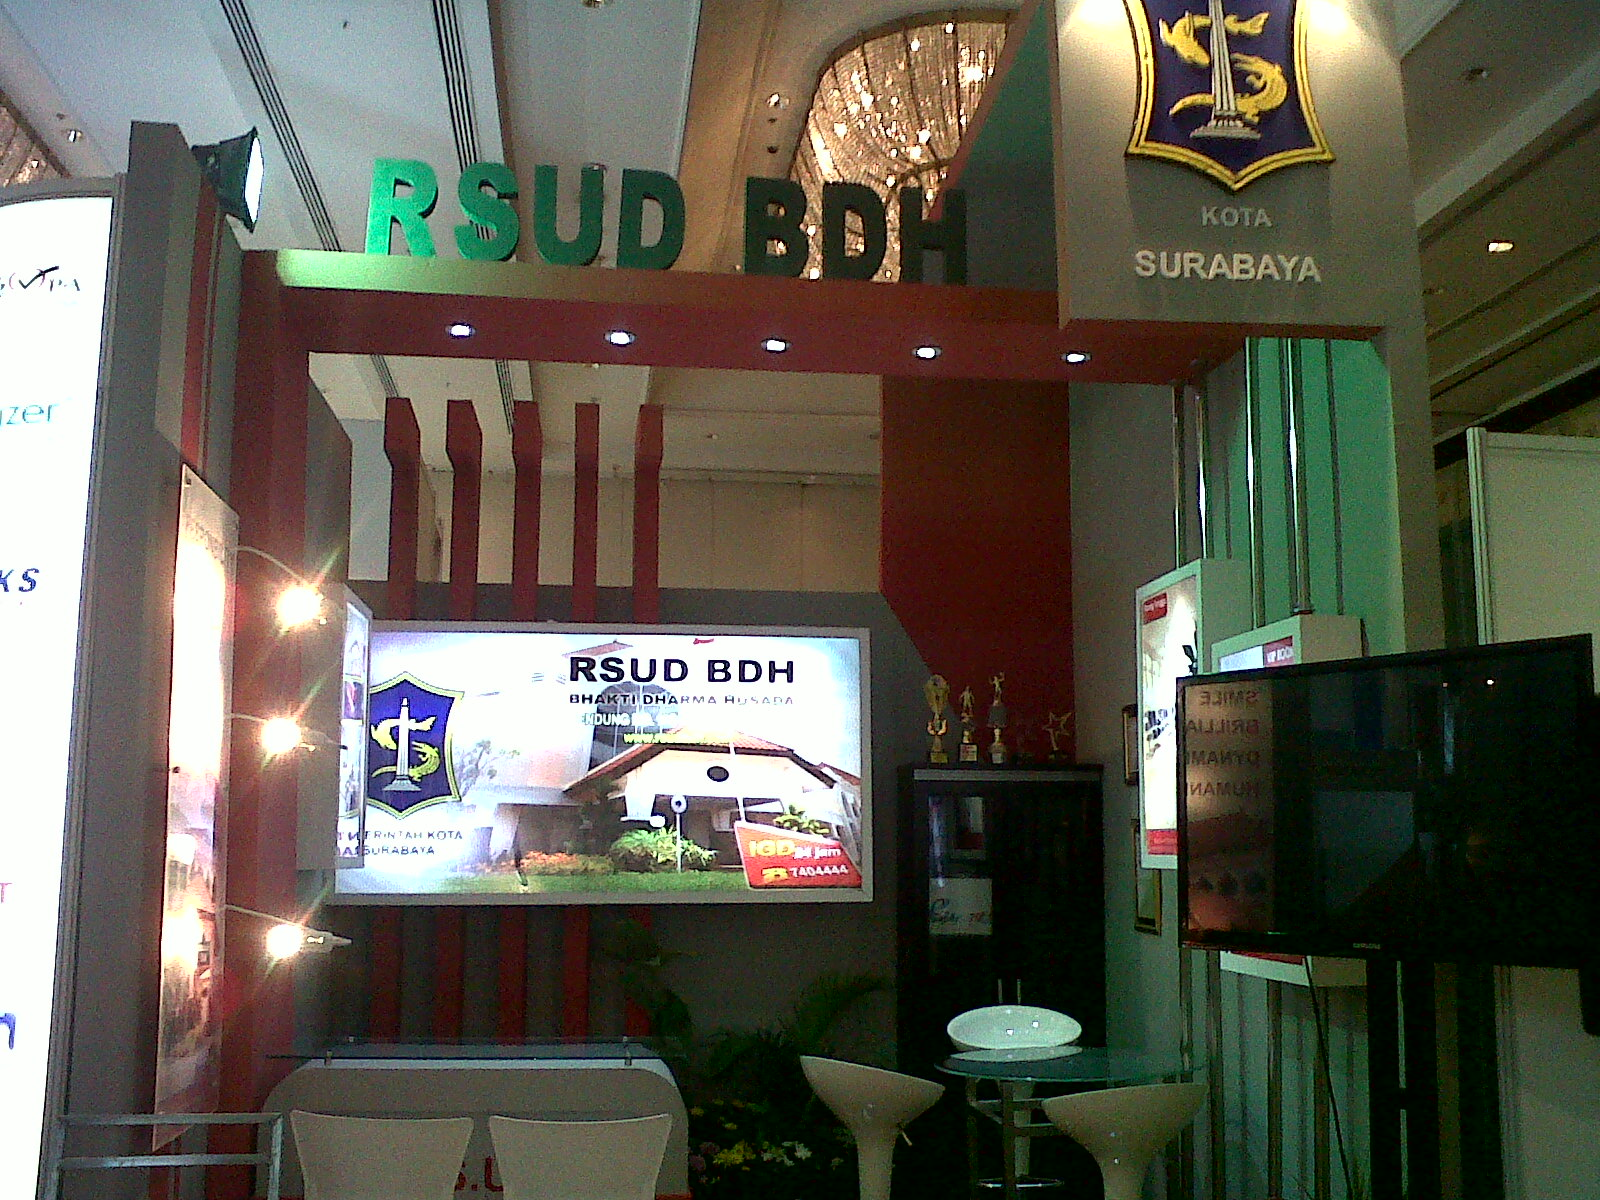 BDH di Hotel Shangrila tgl 23 sd 25 April 2013 event HOSPITAL EXPO IX